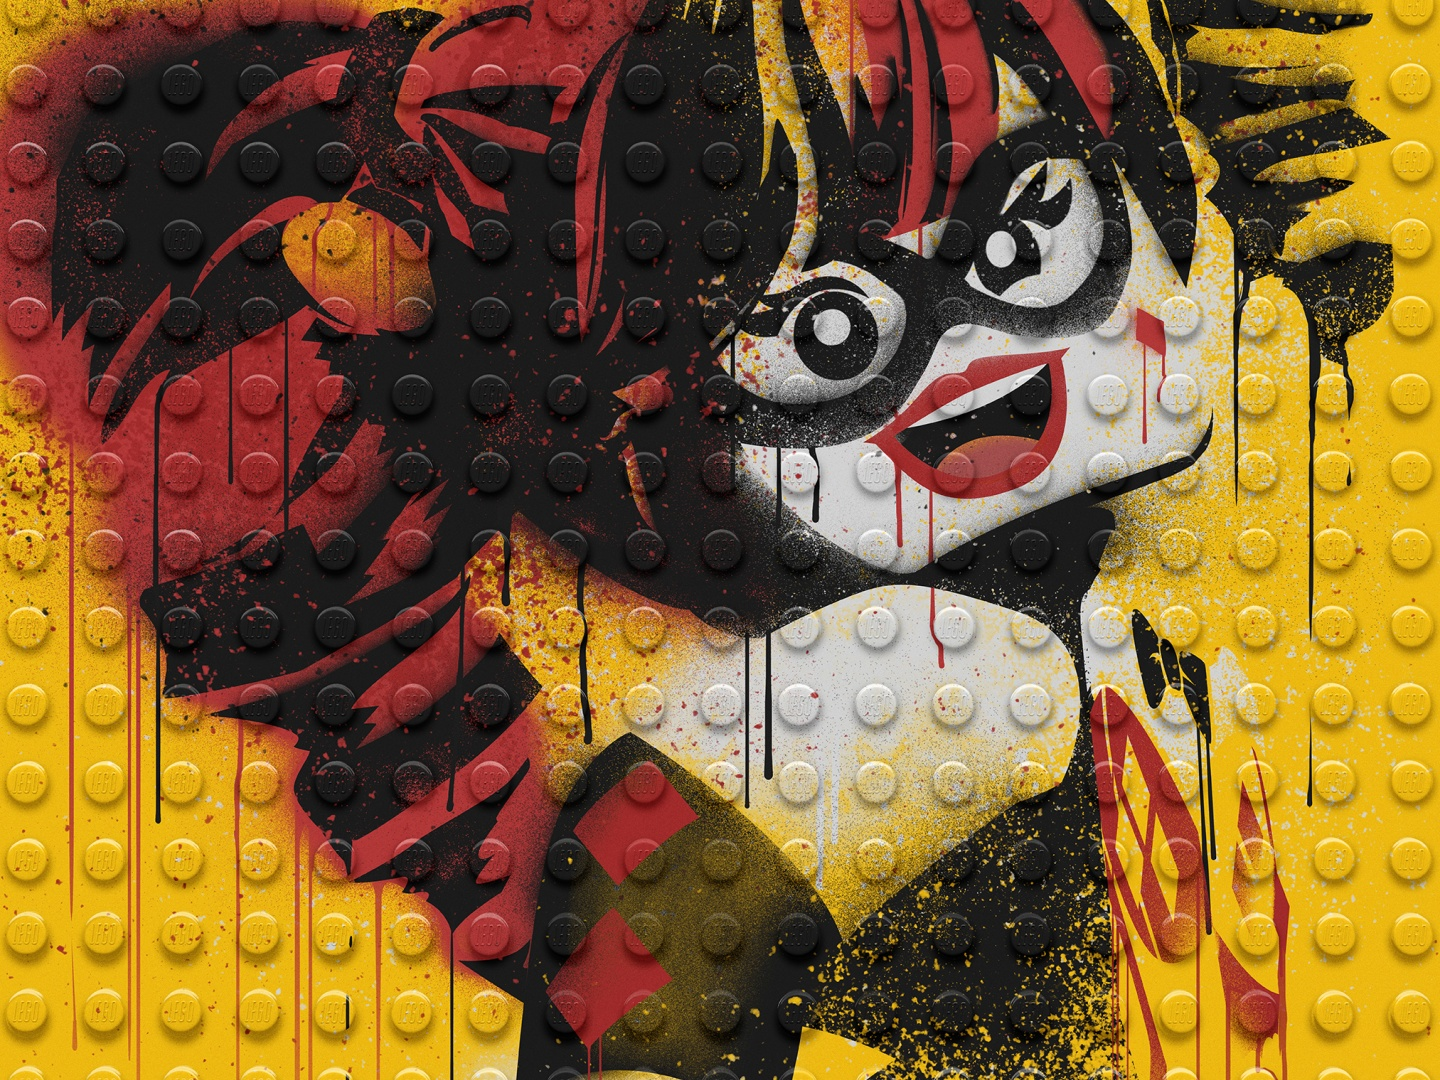 The LEGO Batman Movie - Graffiti Wild Postings | Harley Quinn Thumbnail